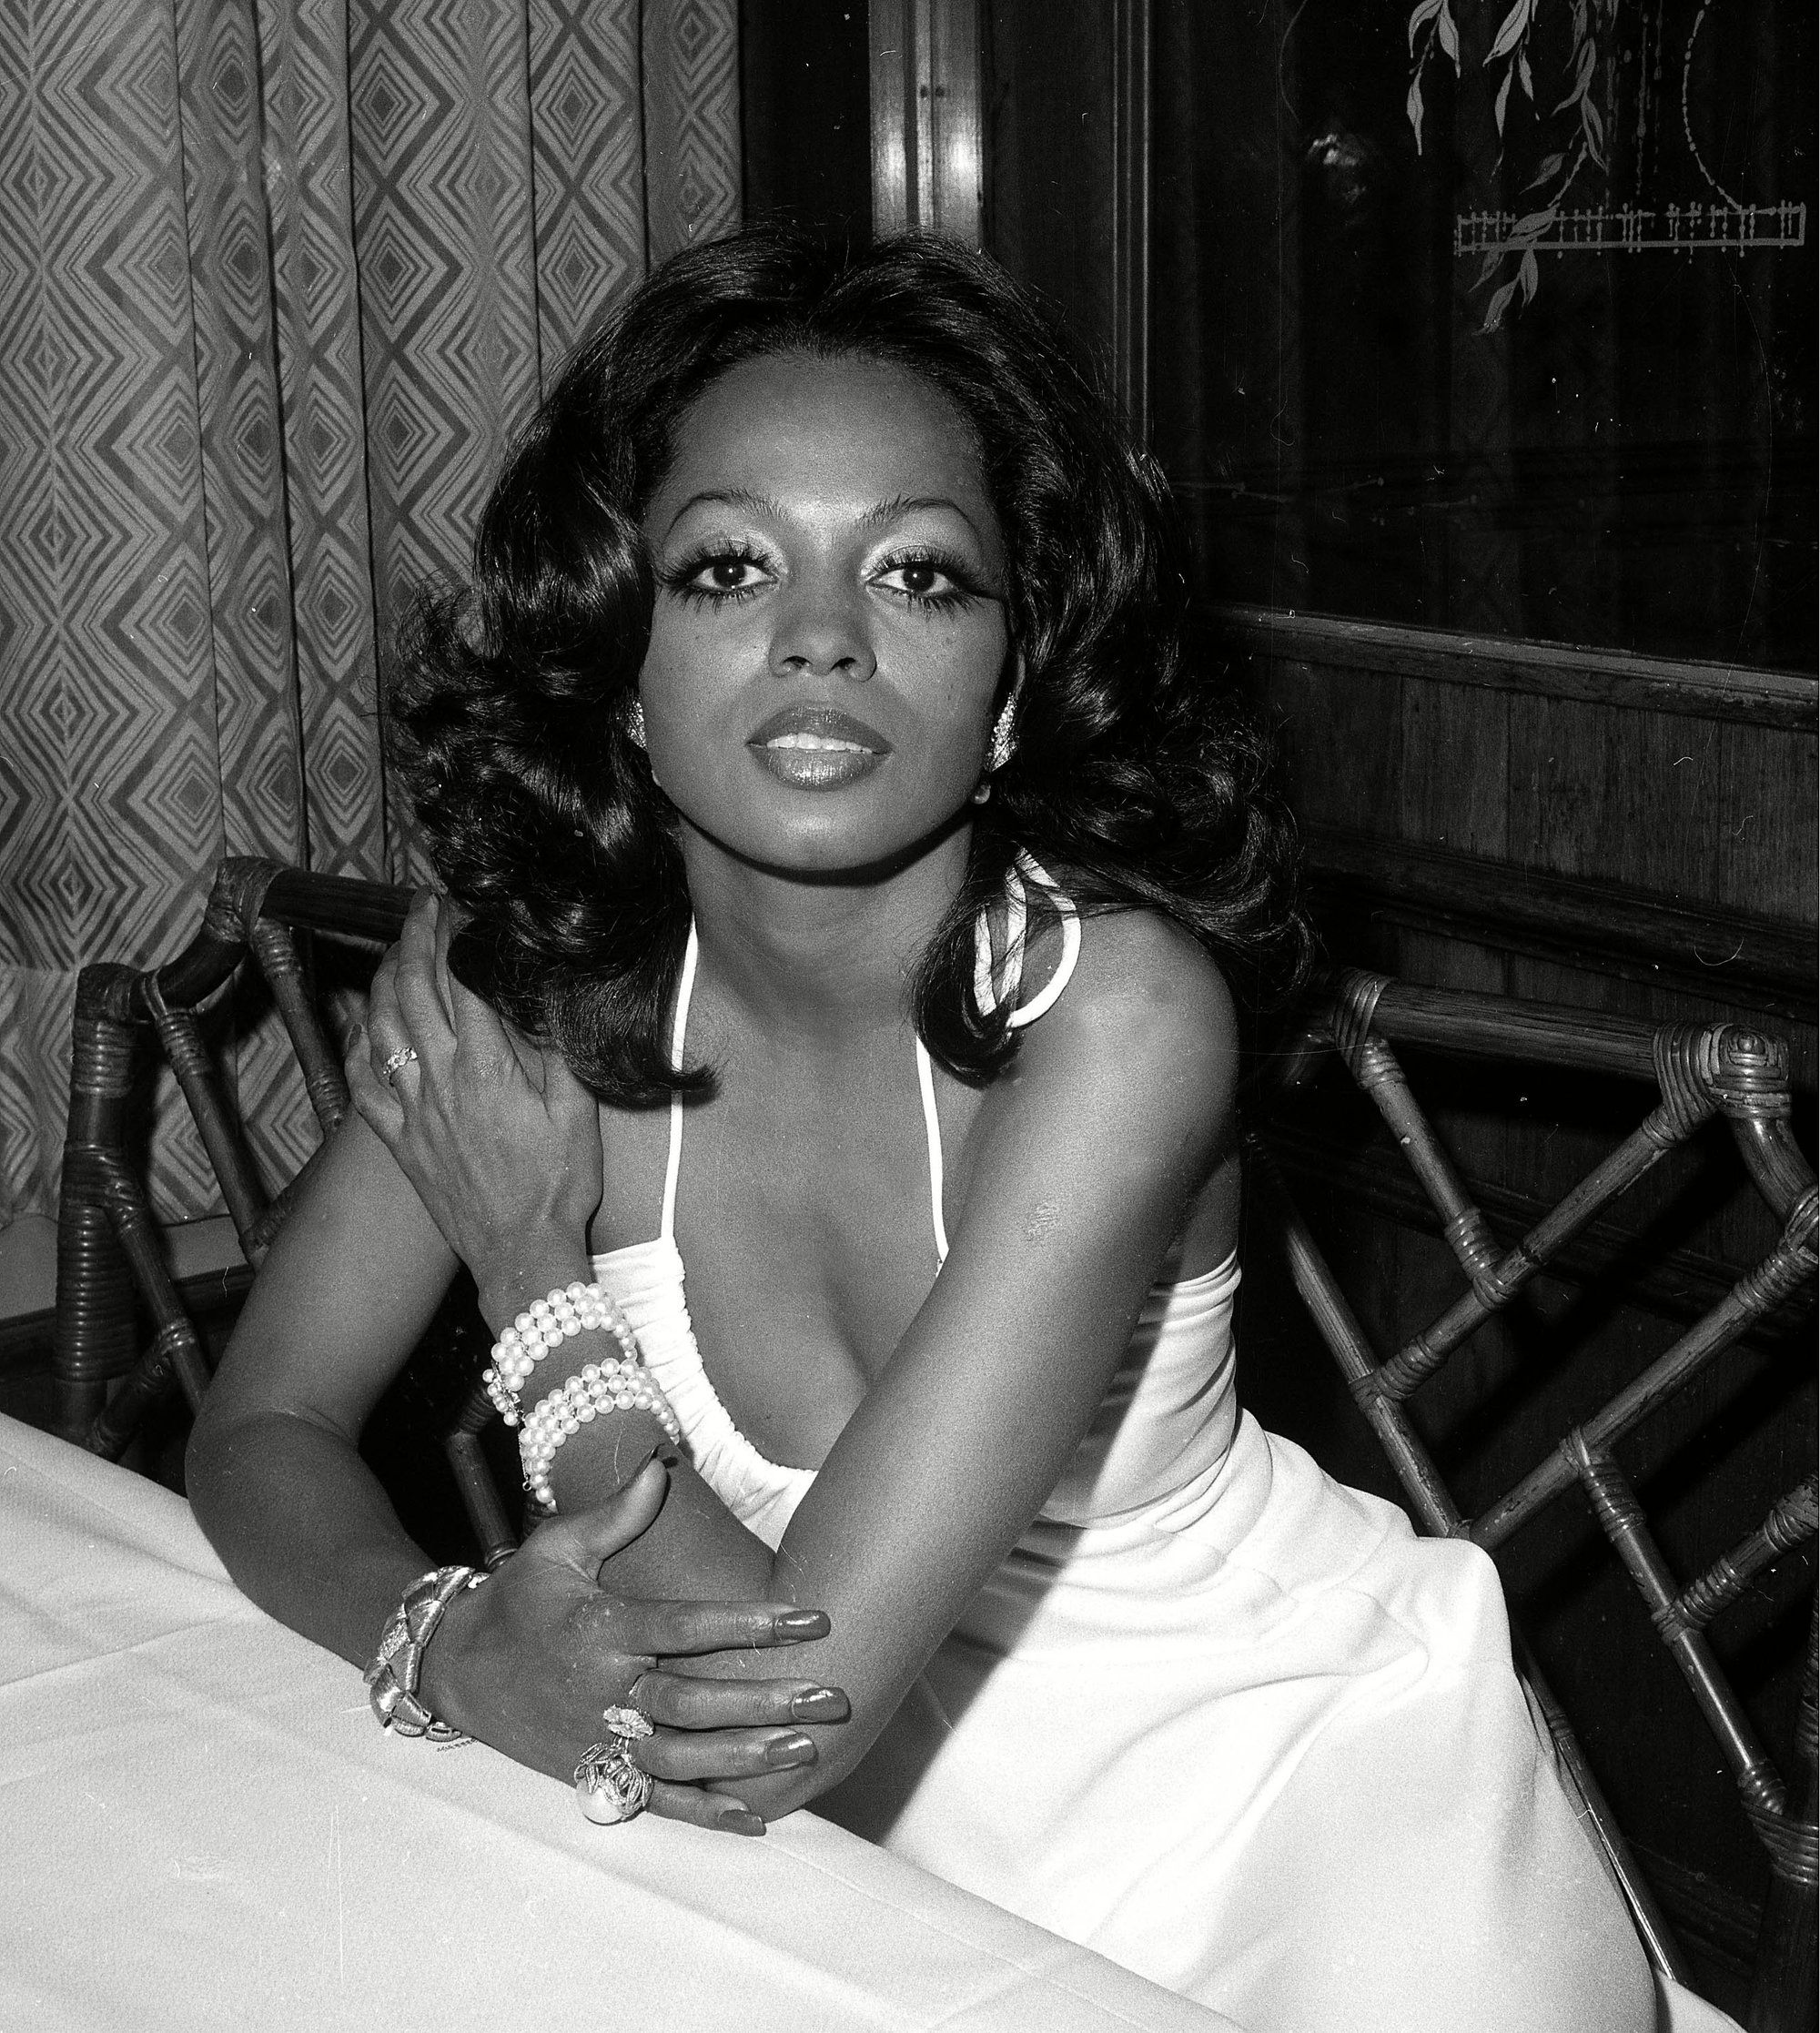 70s hairstyles: Diana Ross black and white image with her dark brown medium shoulder length hair styled with loose waves sitting at a table